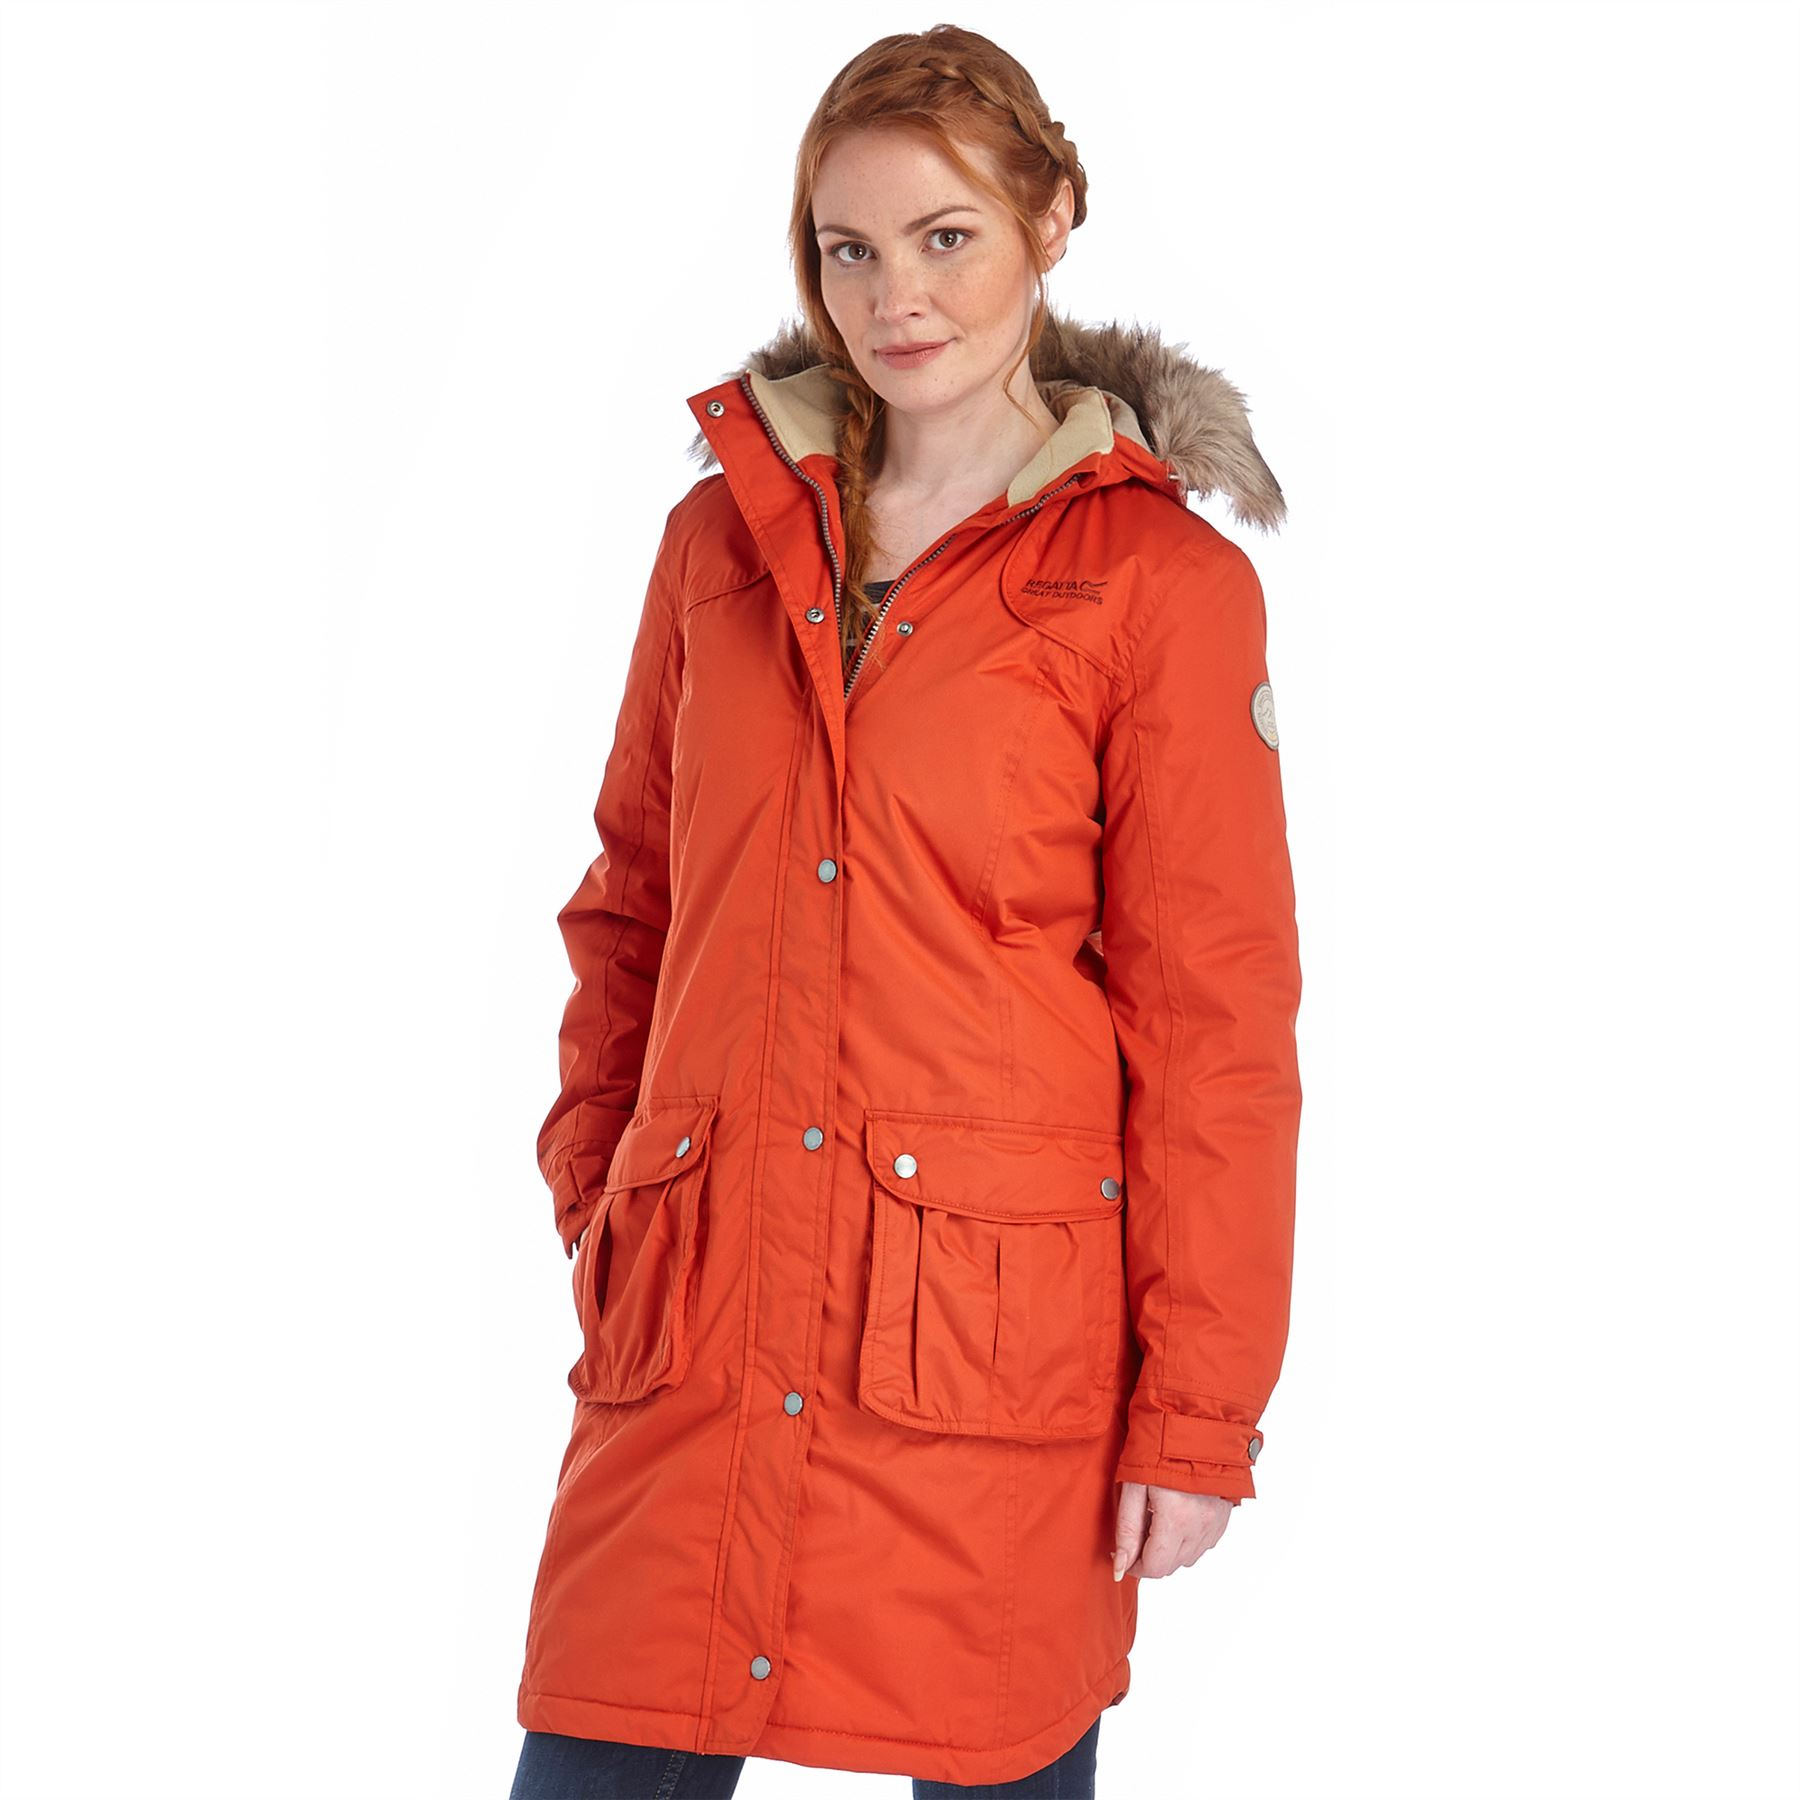 A reliable waterproof jacket is a must-have for the whole year. Our women's clearance waterproof jackets section is the best place to find discount outerwear, that still has a high quality design.